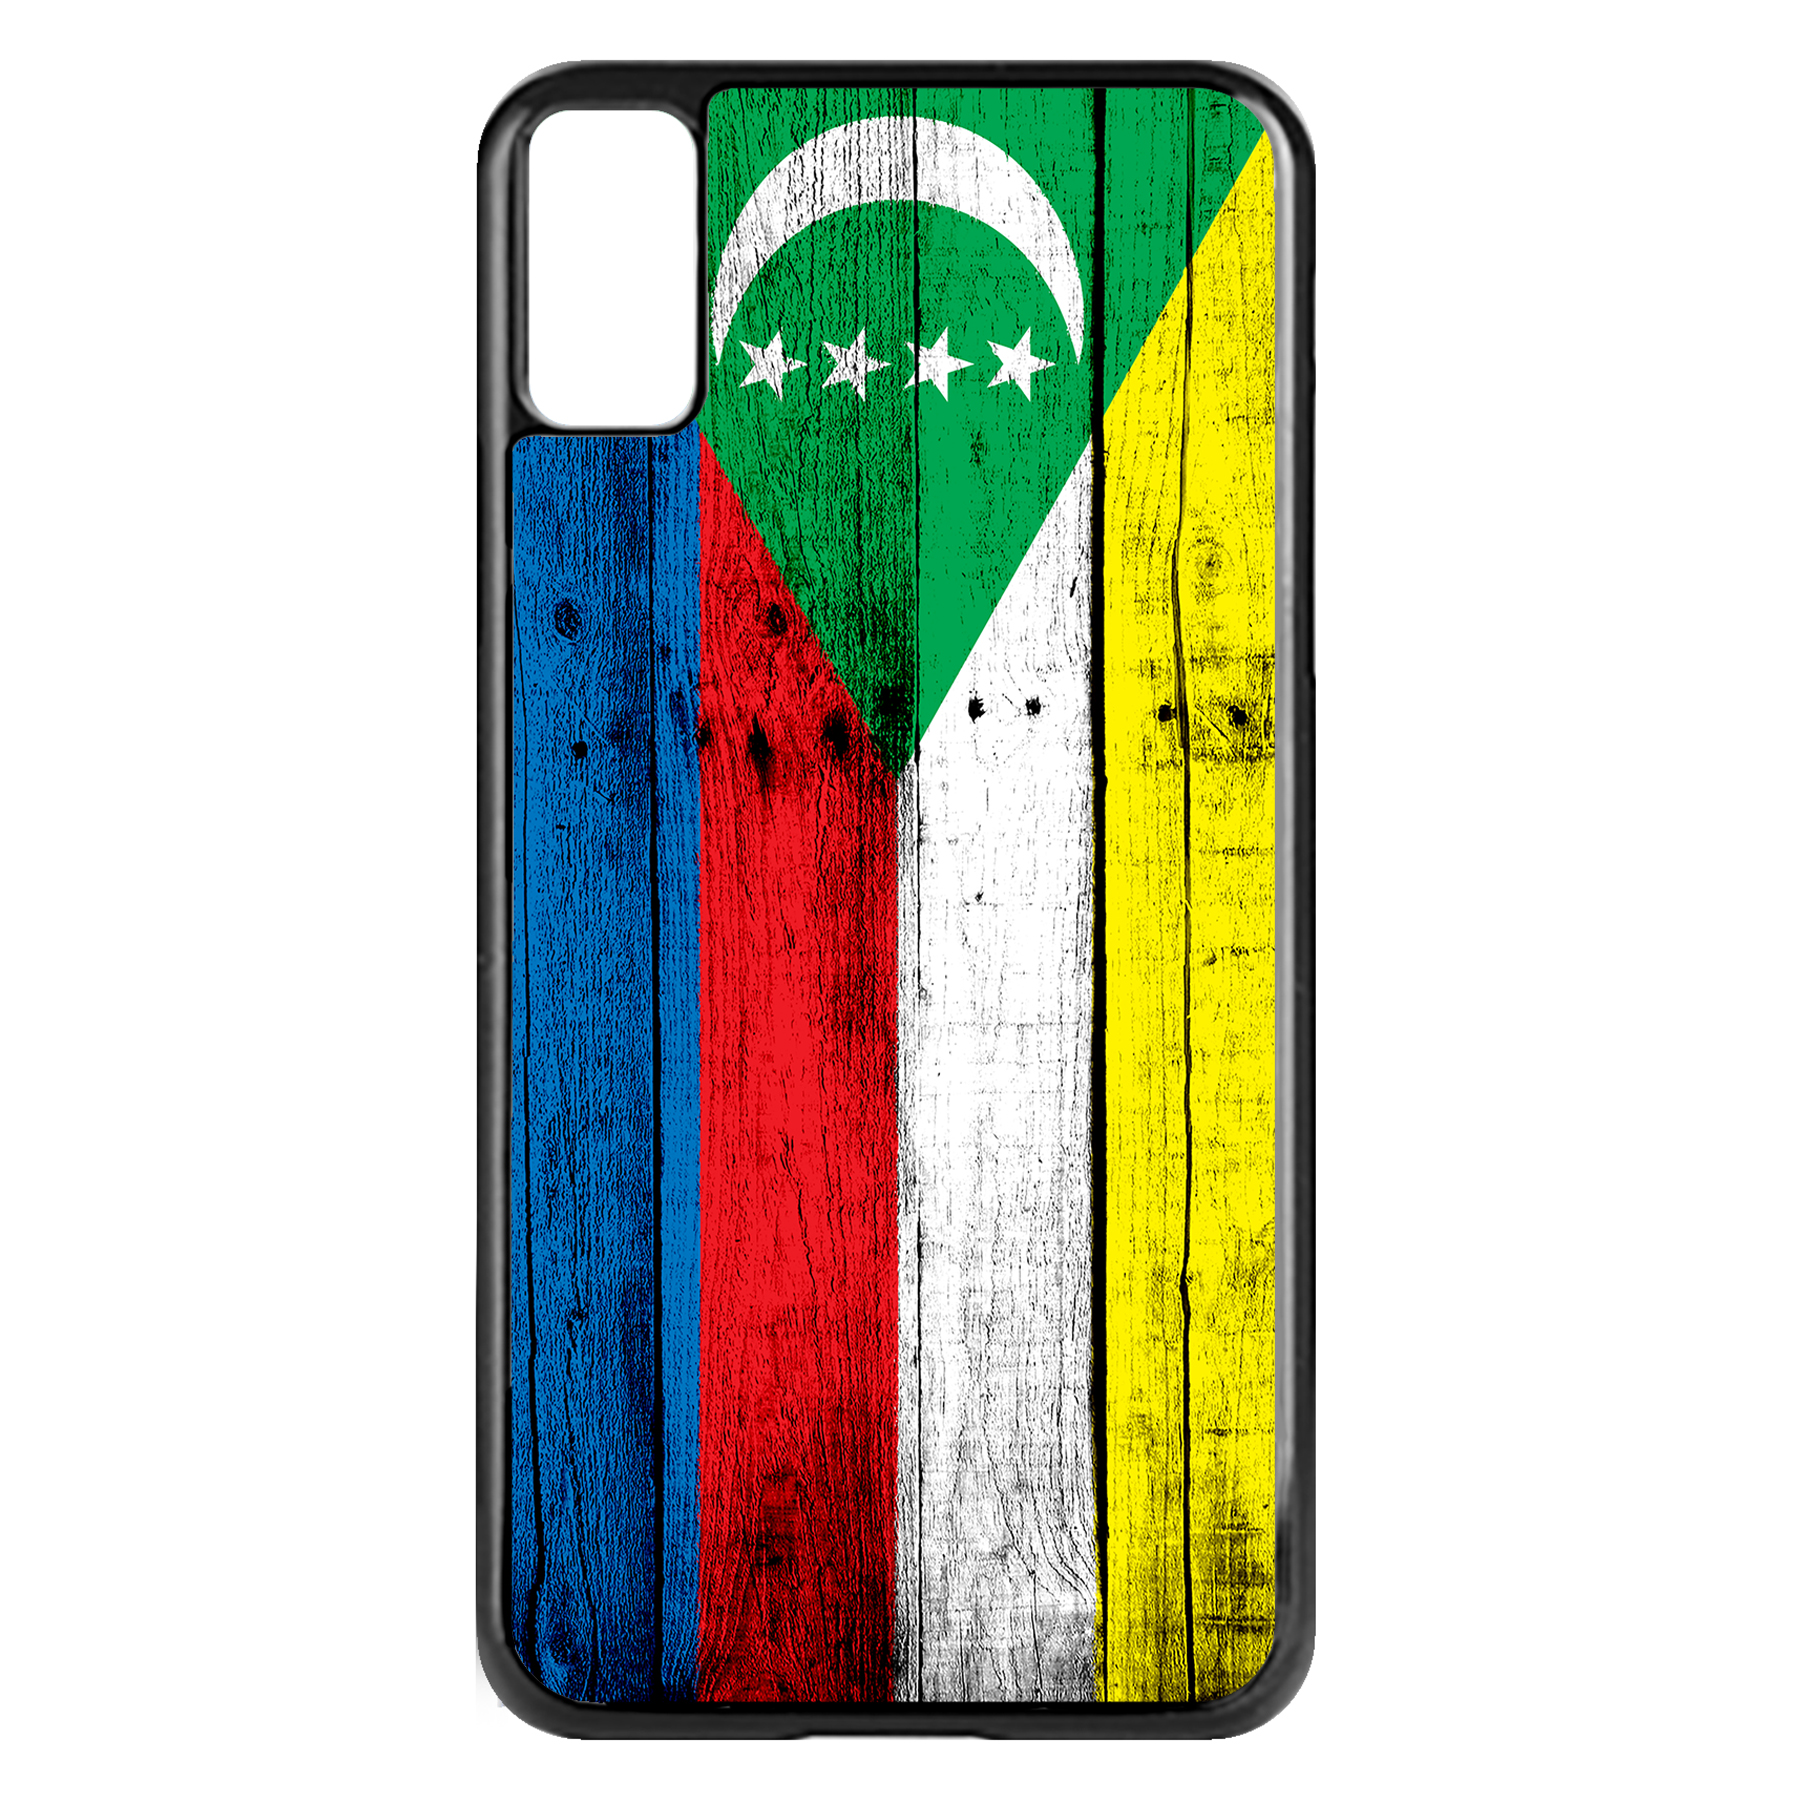 Apple-iPhone-Case-with-Flag-of-Comoros-Comorian-Many-Design-Options thumbnail 6